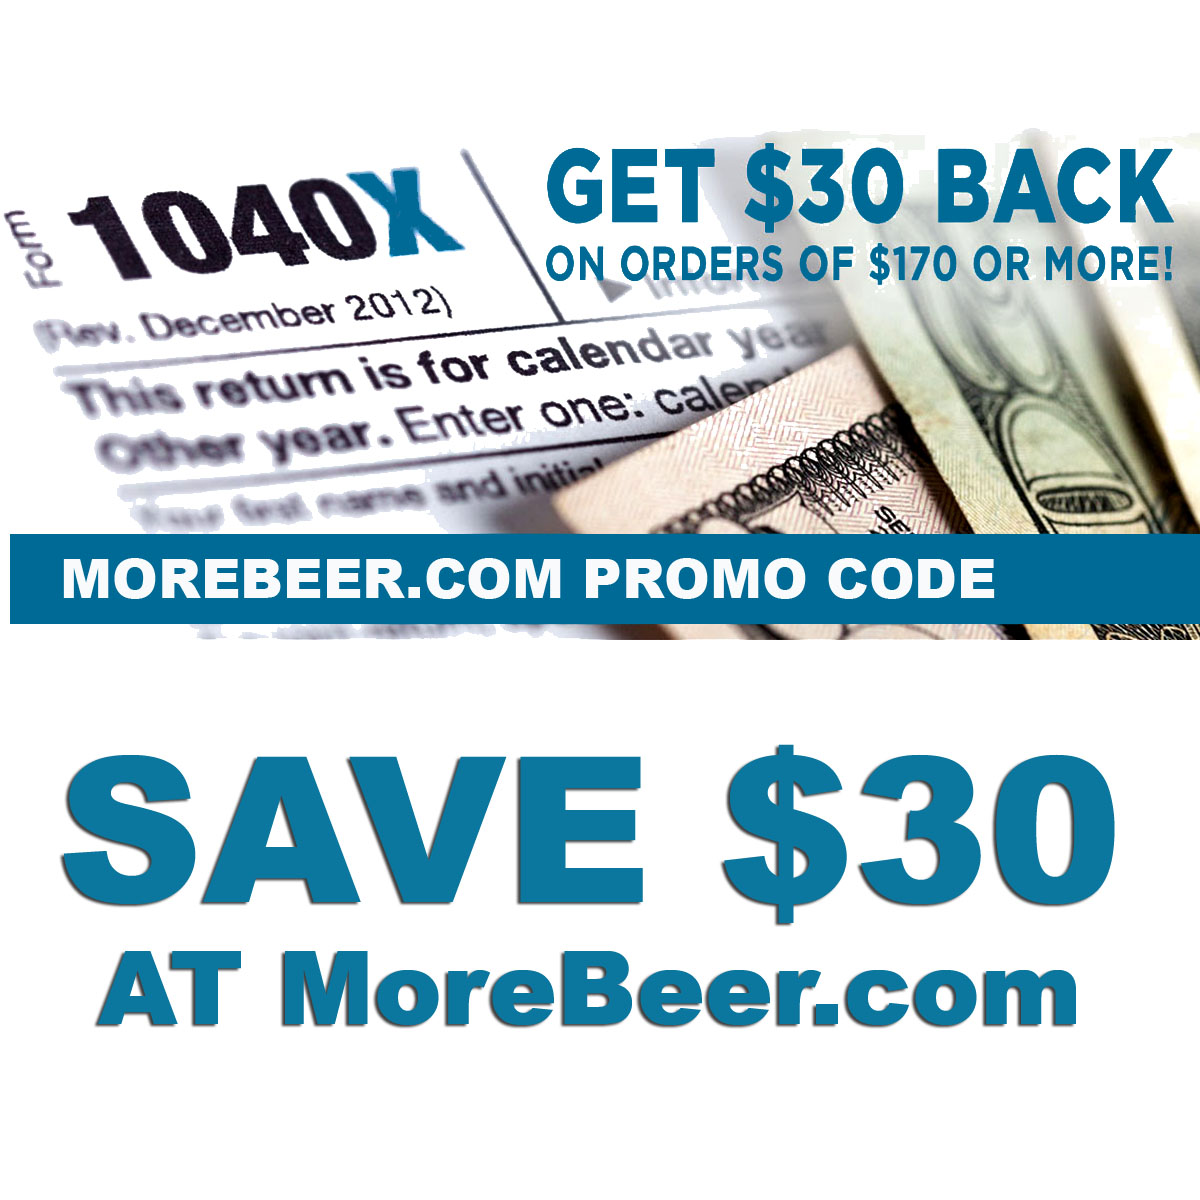 MoreBeer Get $30 Back On Orders Of $170 Or More at MoreBeer.com when you use this More Beer Promo Code Coupon Code